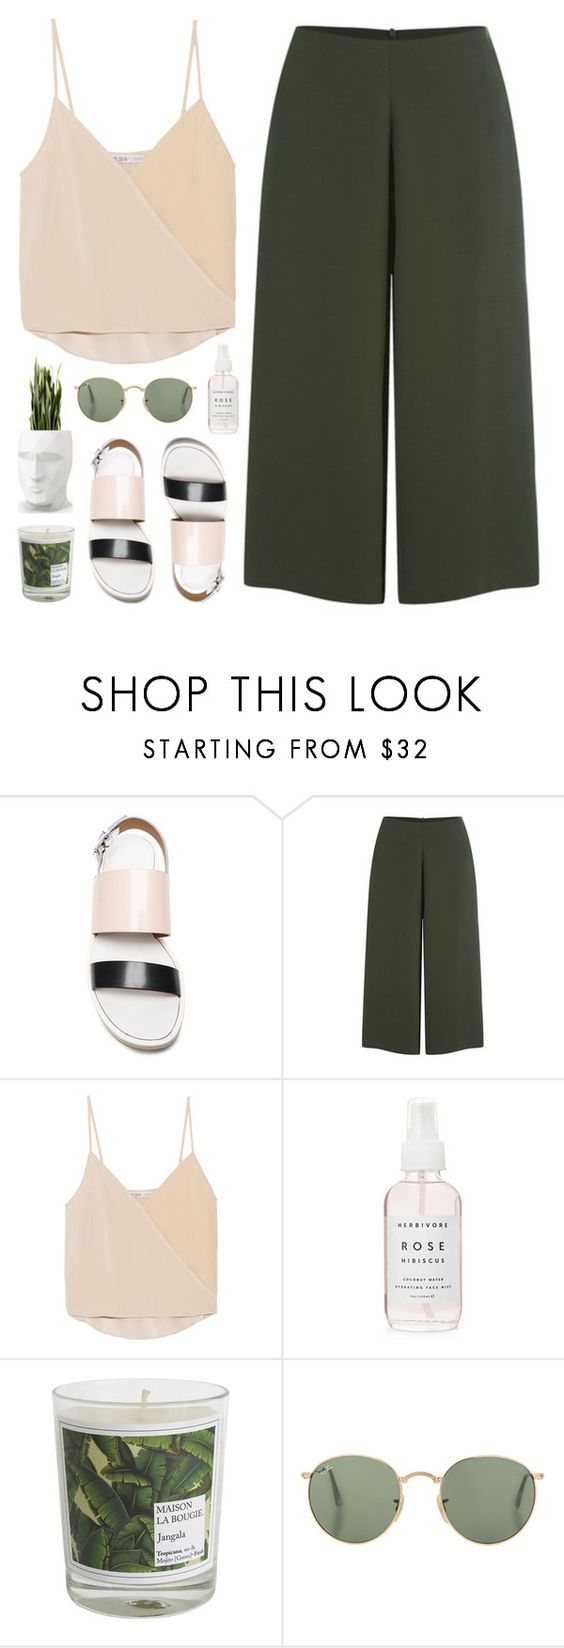 """incandescent"" by martosaur ❤ liked on Polyvore featuring Cameo, Chelsea Flower, Maison La Bougie and Vondom"